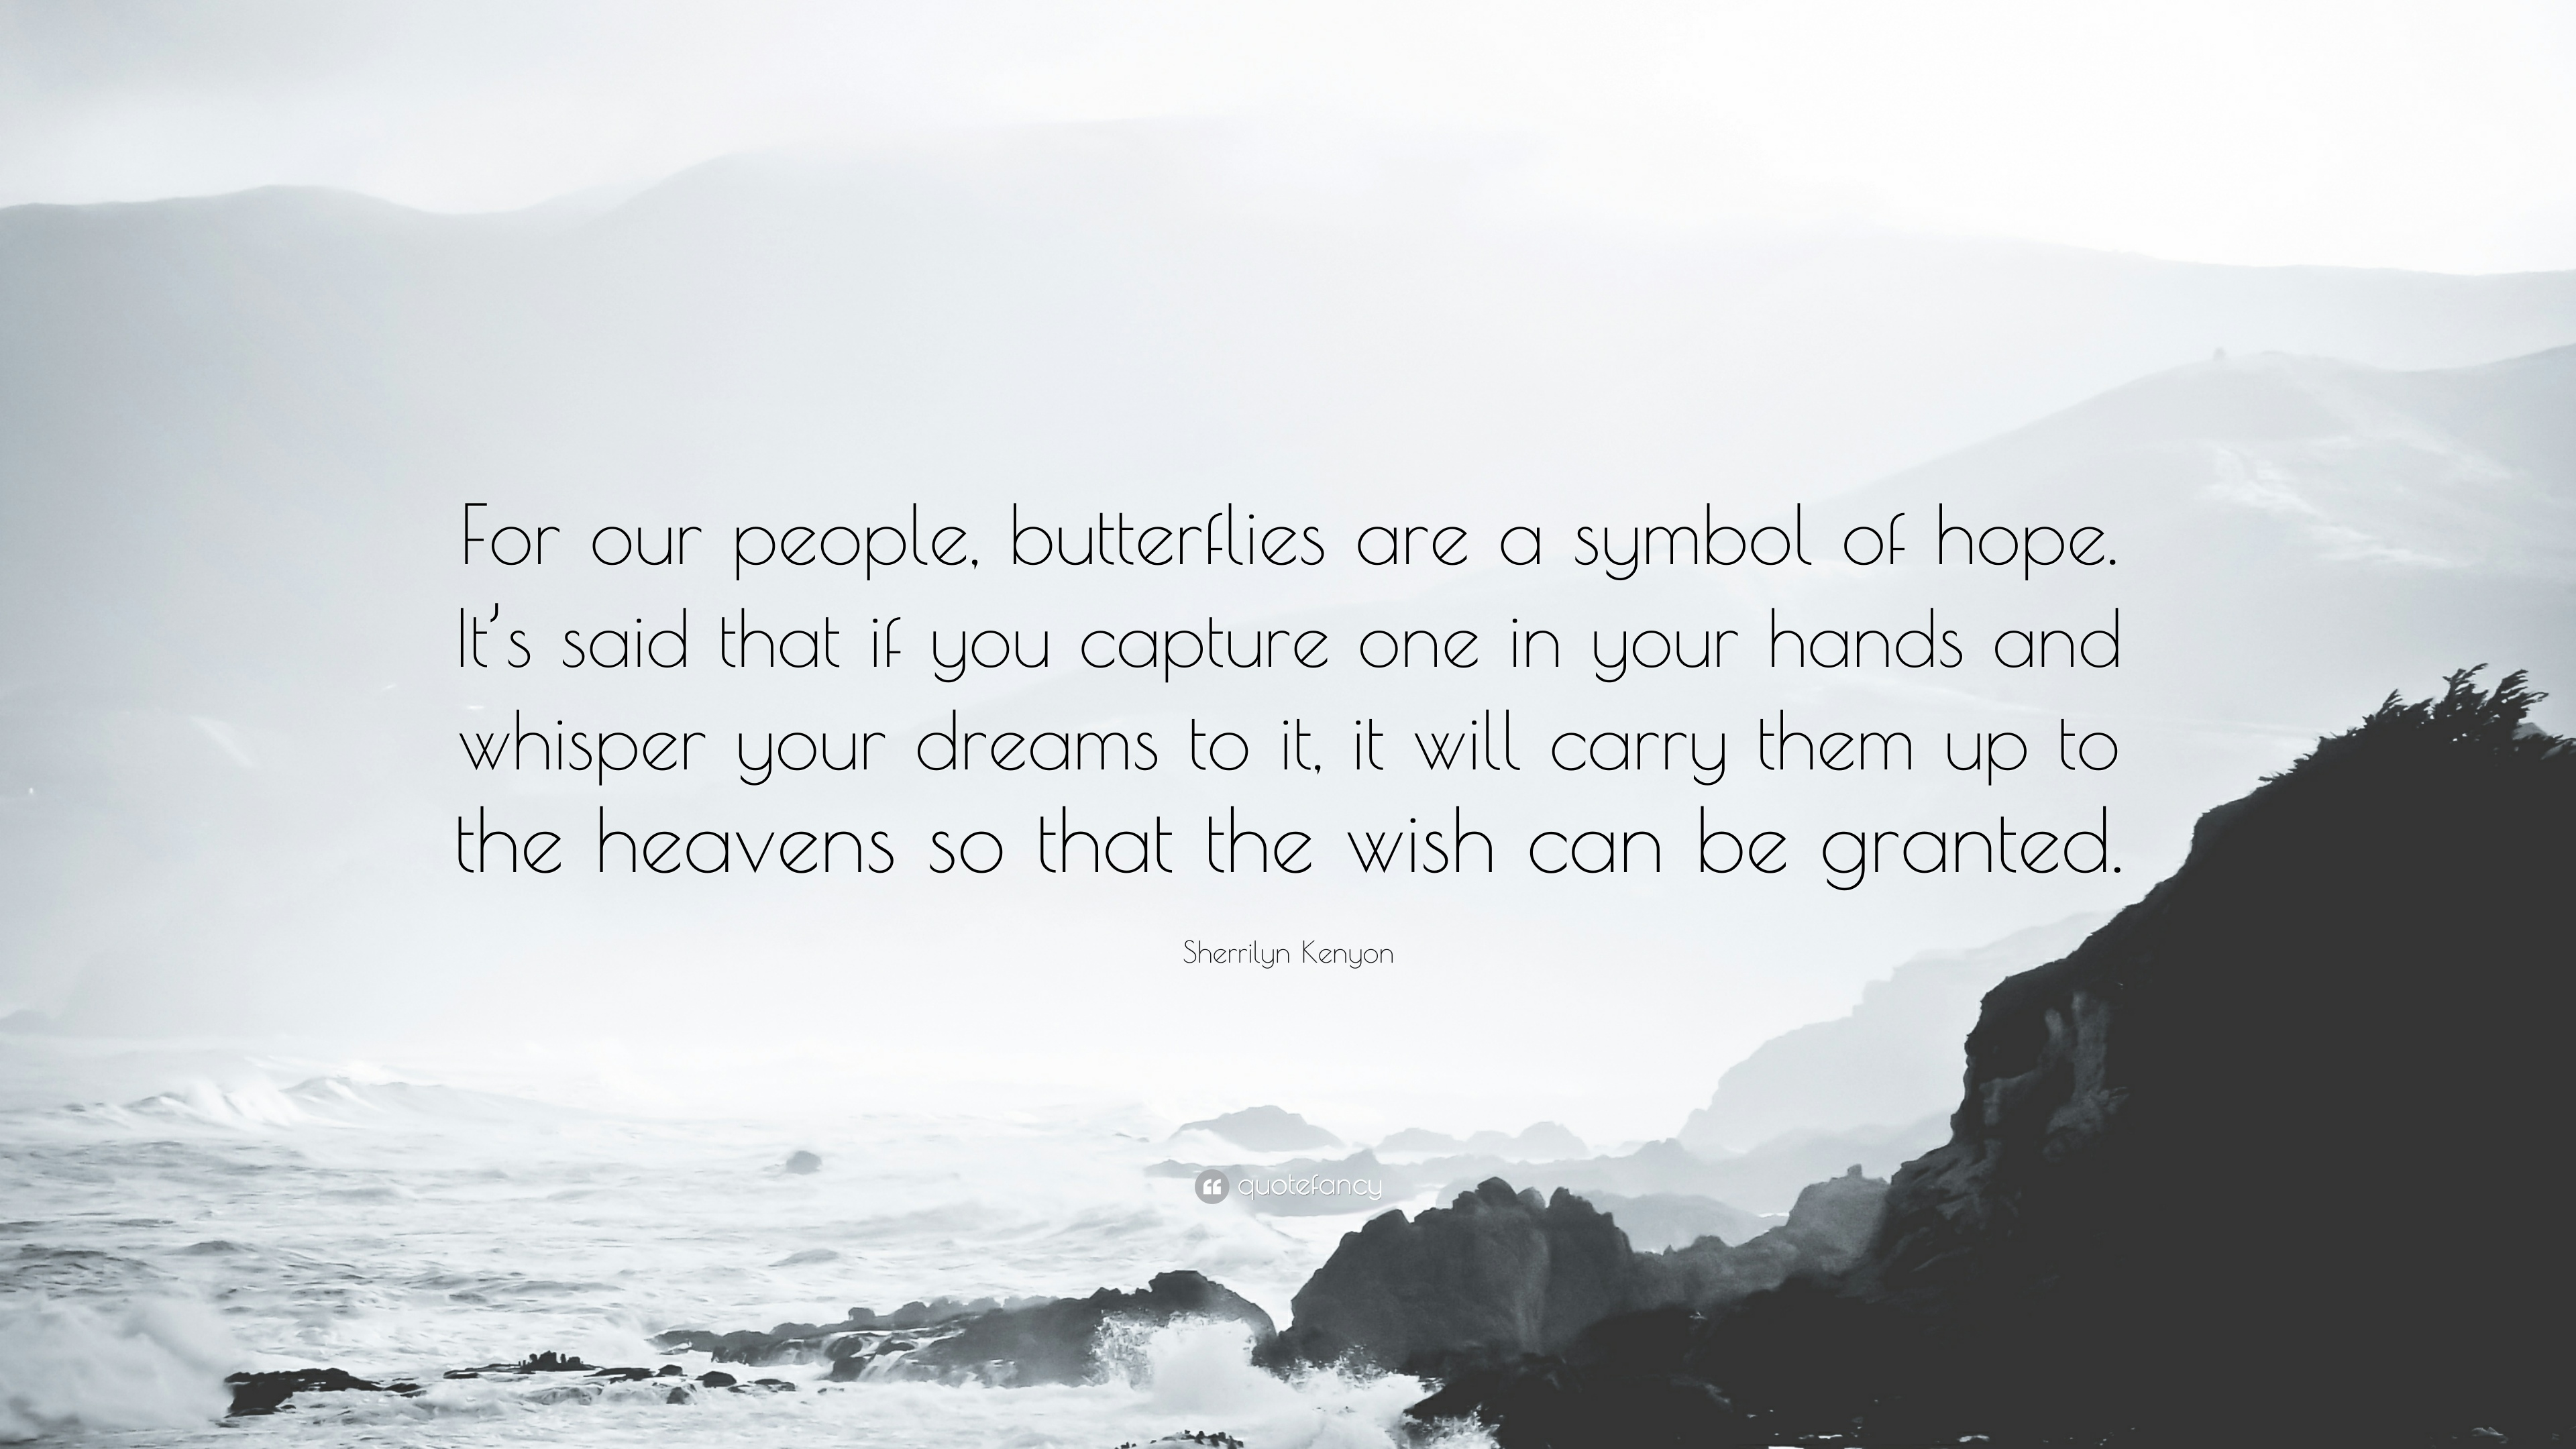 Sherrilyn kenyon quote for our people butterflies are a symbol sherrilyn kenyon quote for our people butterflies are a symbol of hope biocorpaavc Choice Image